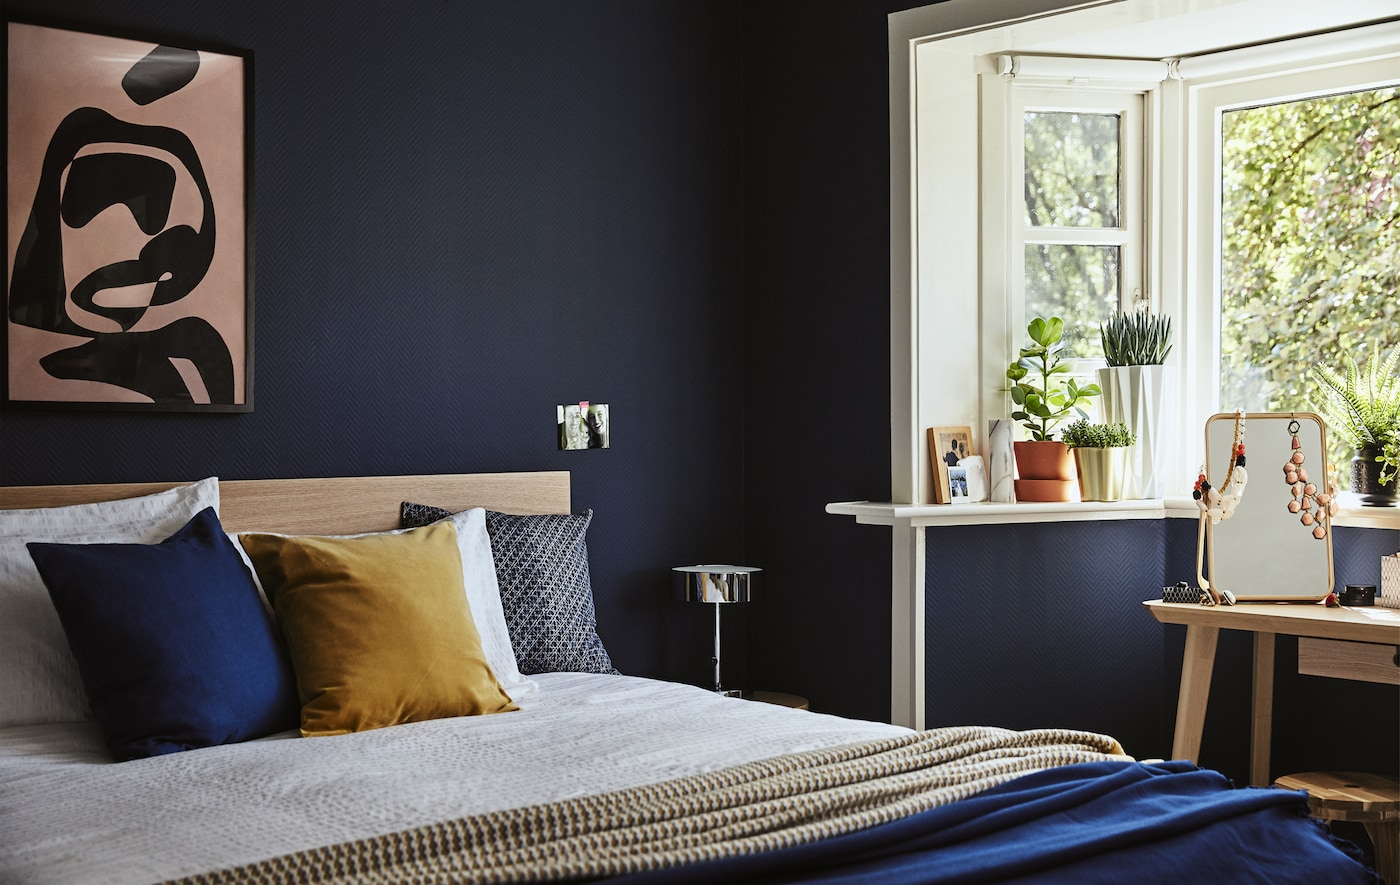 A corner of a dark blue bedroom with a double bed and plant pots on the windowsill.